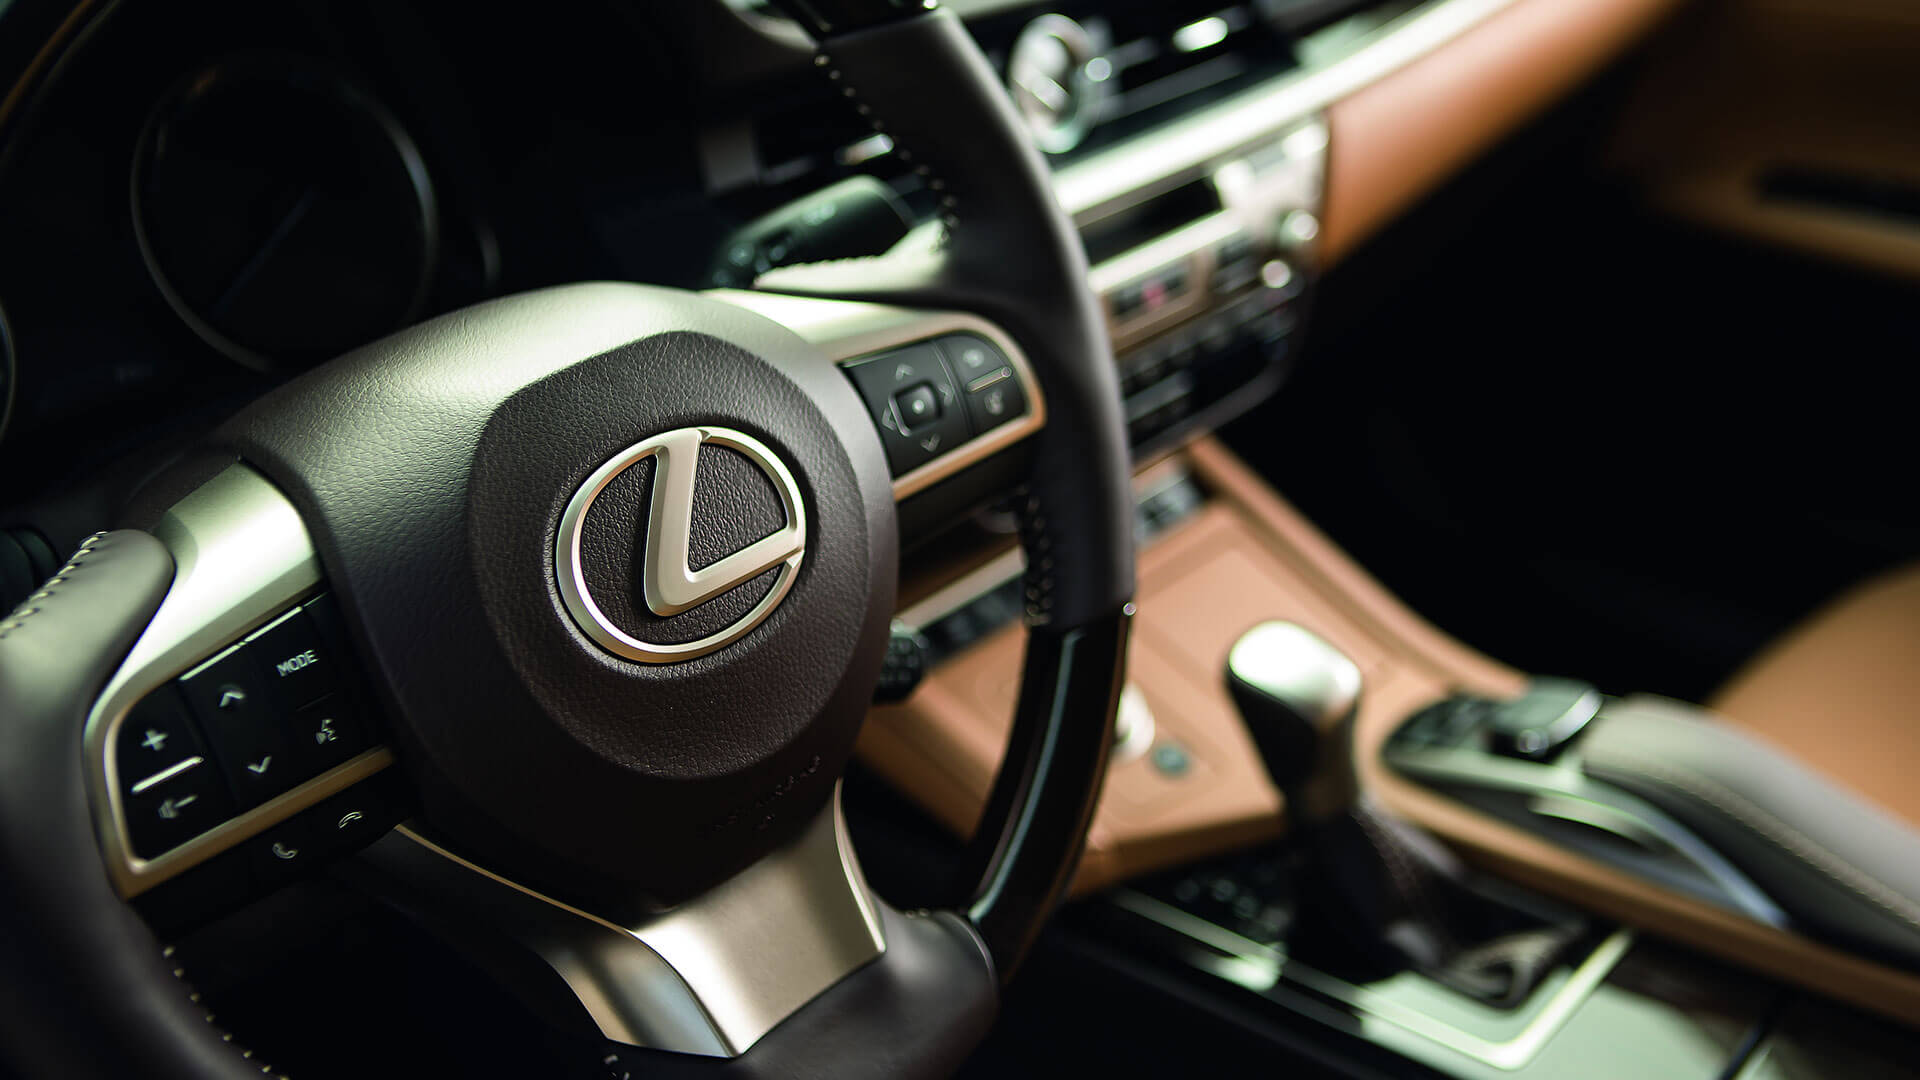 2017 lexus es gallery 018 interior